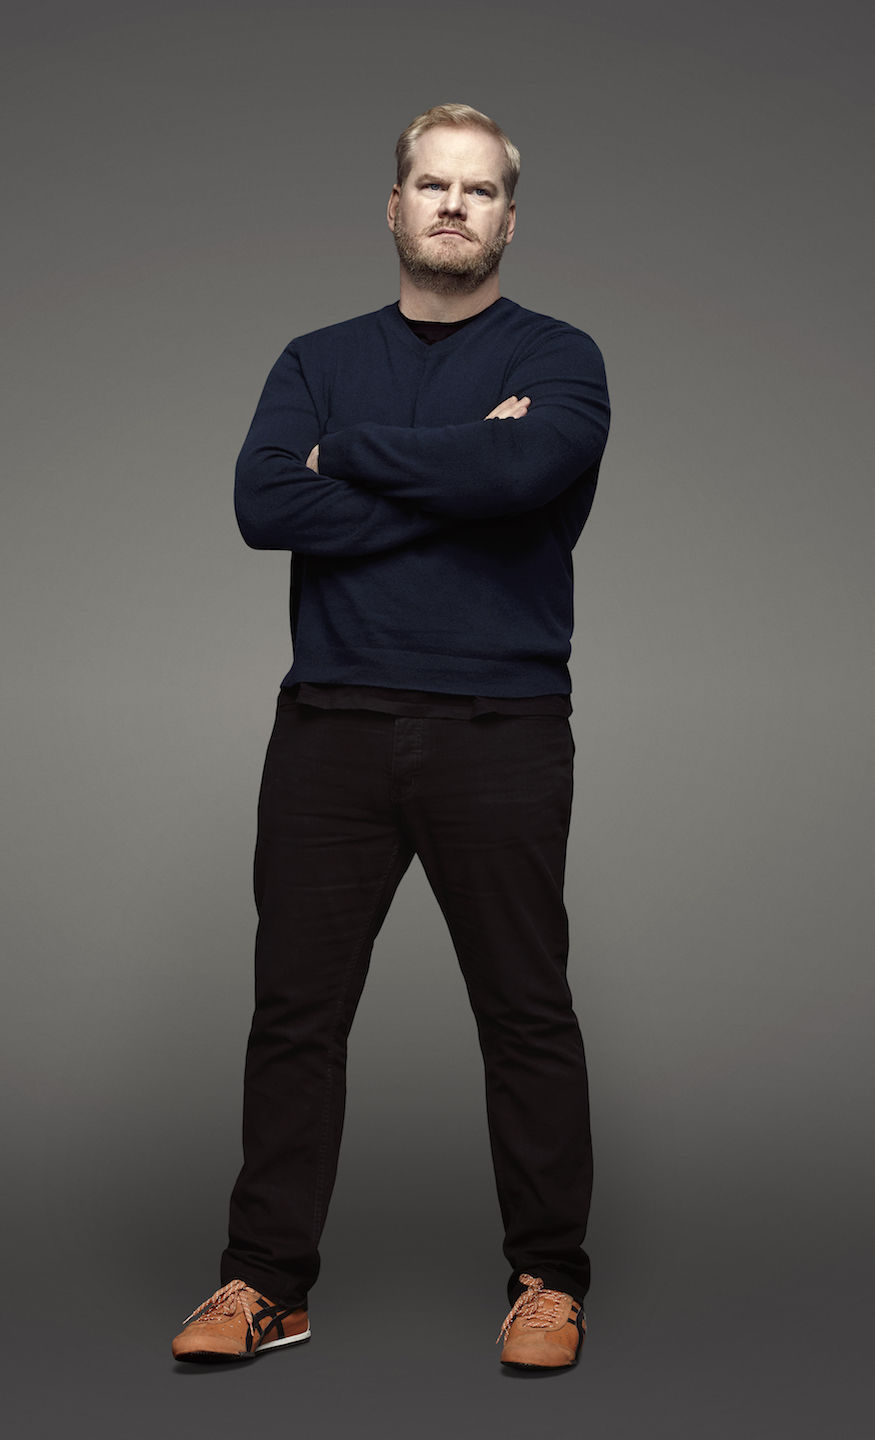 Jim Gaffigan Returns To Adler Theatre In July Local News